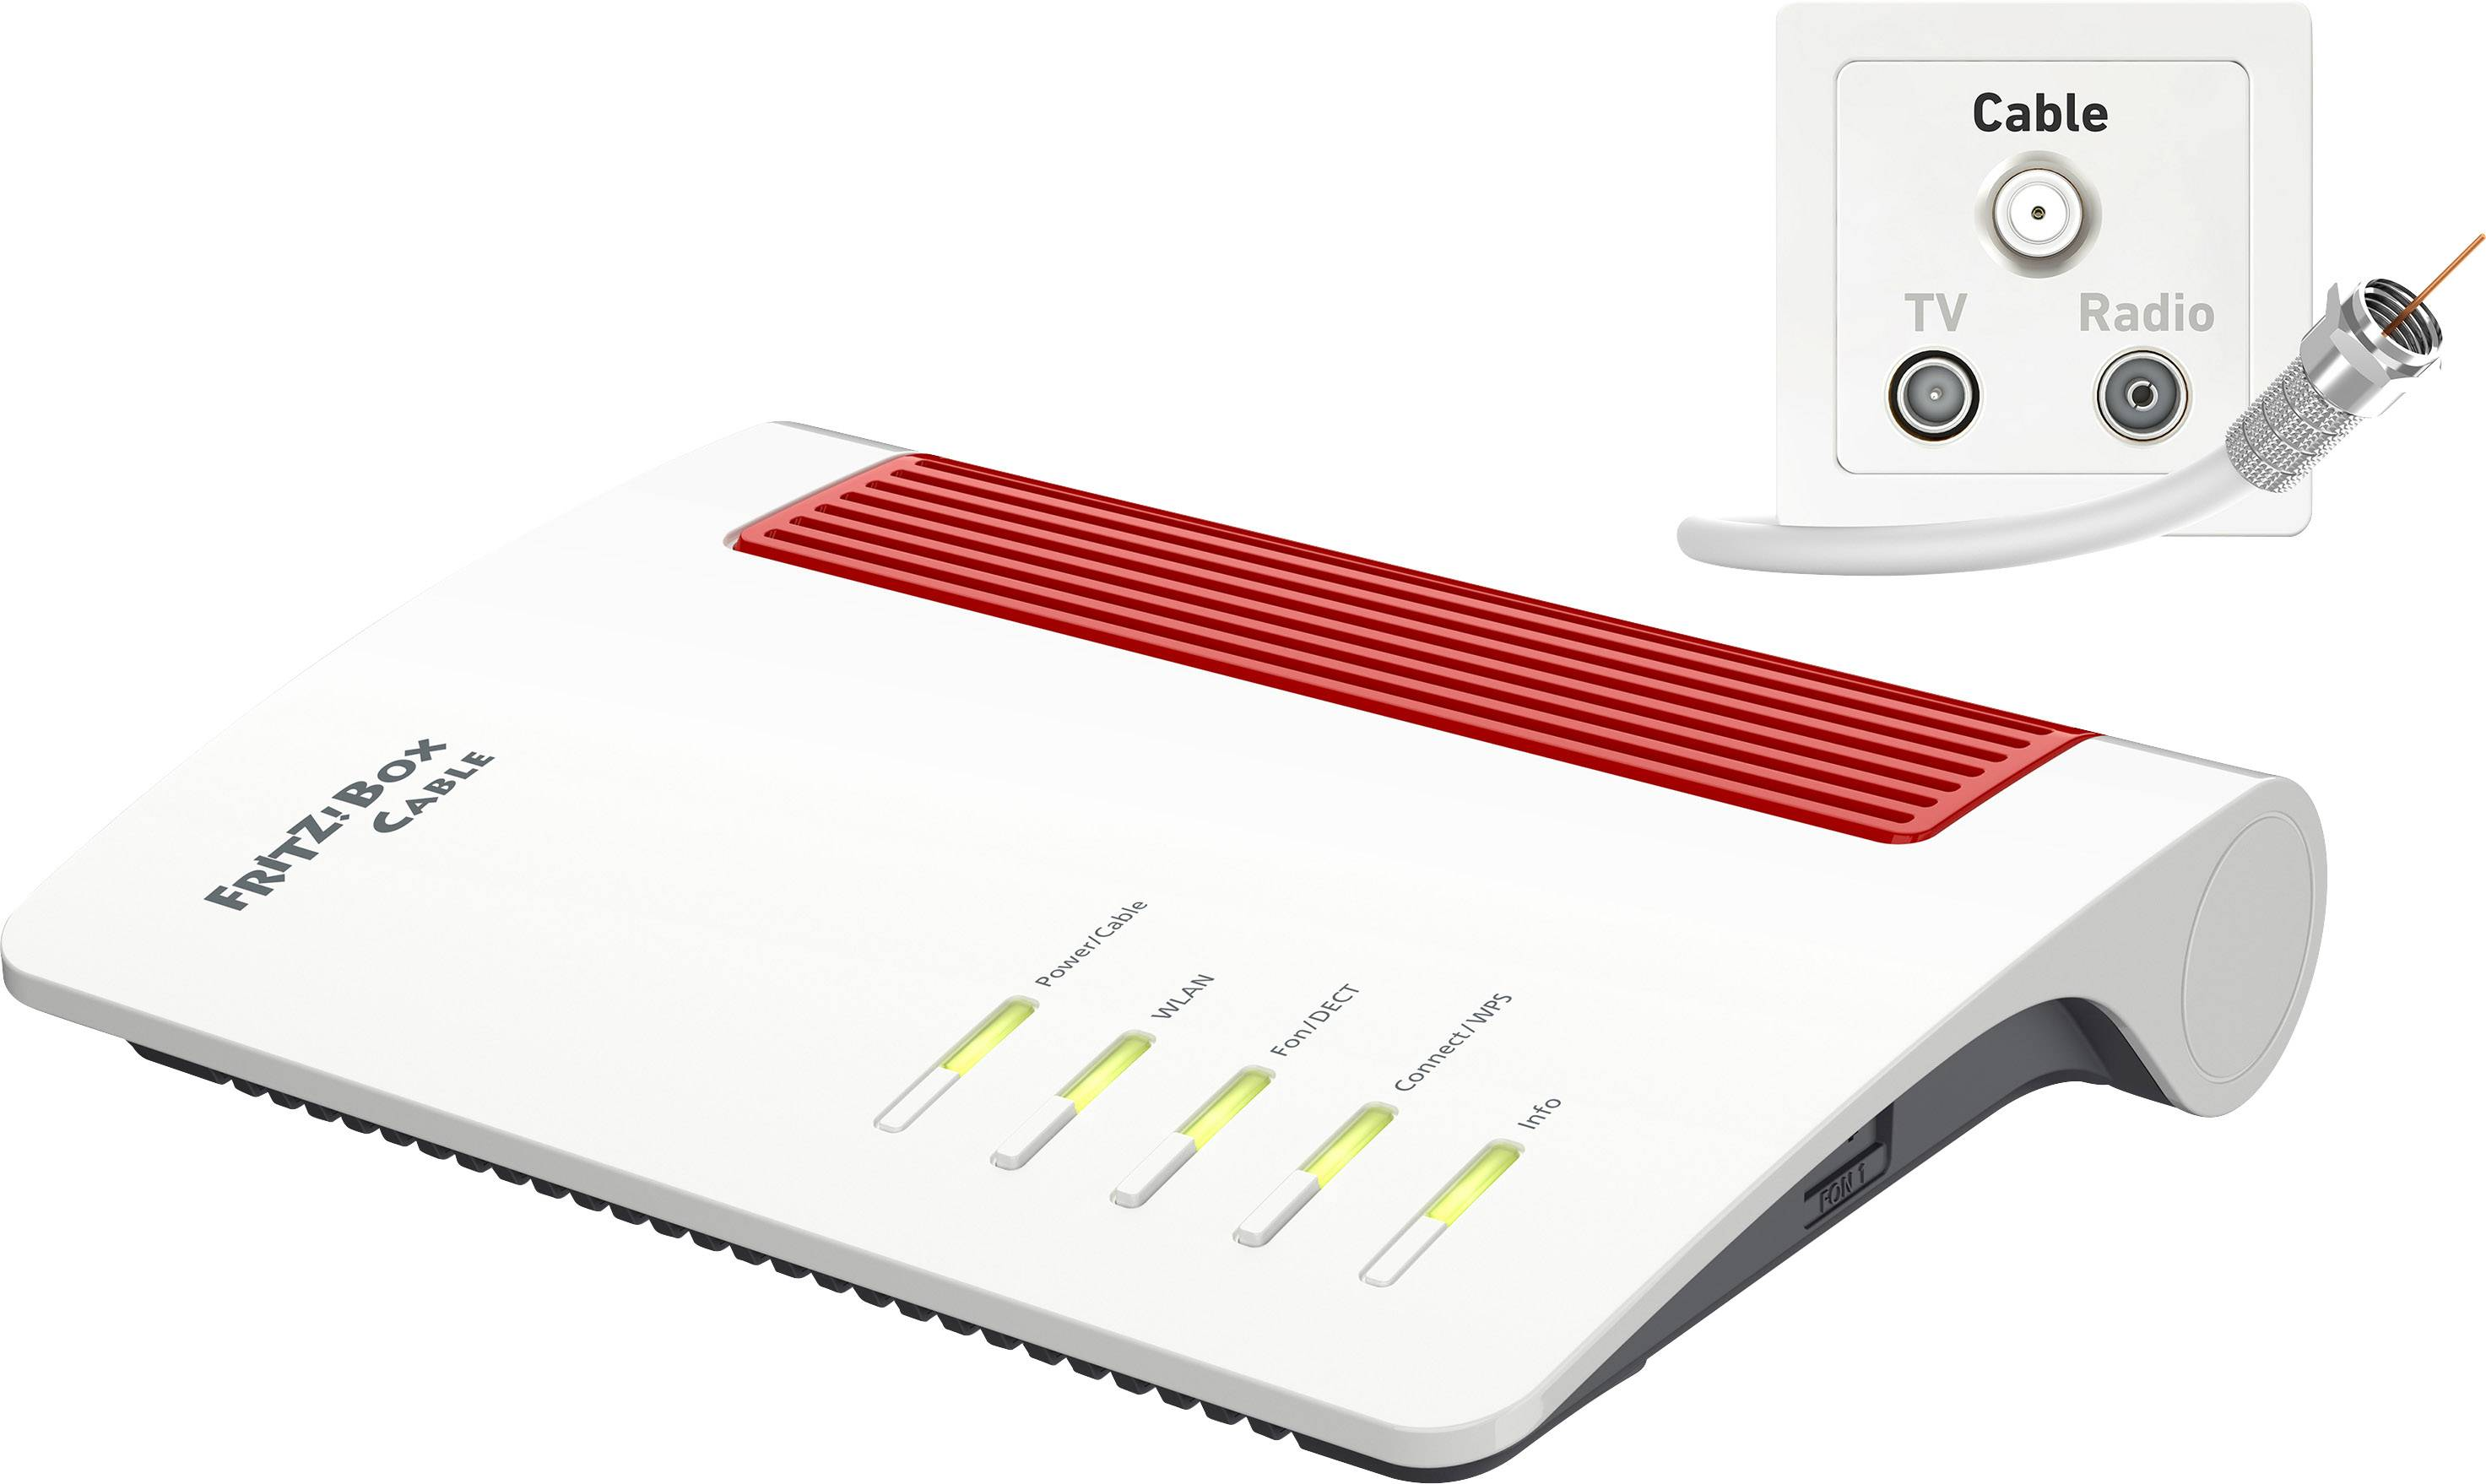 AVM FRITZBox 2000 Cable Wi Fi modem router Built in modem Kabel 200.200 GHz,  200 GHz 200.200 Gbps